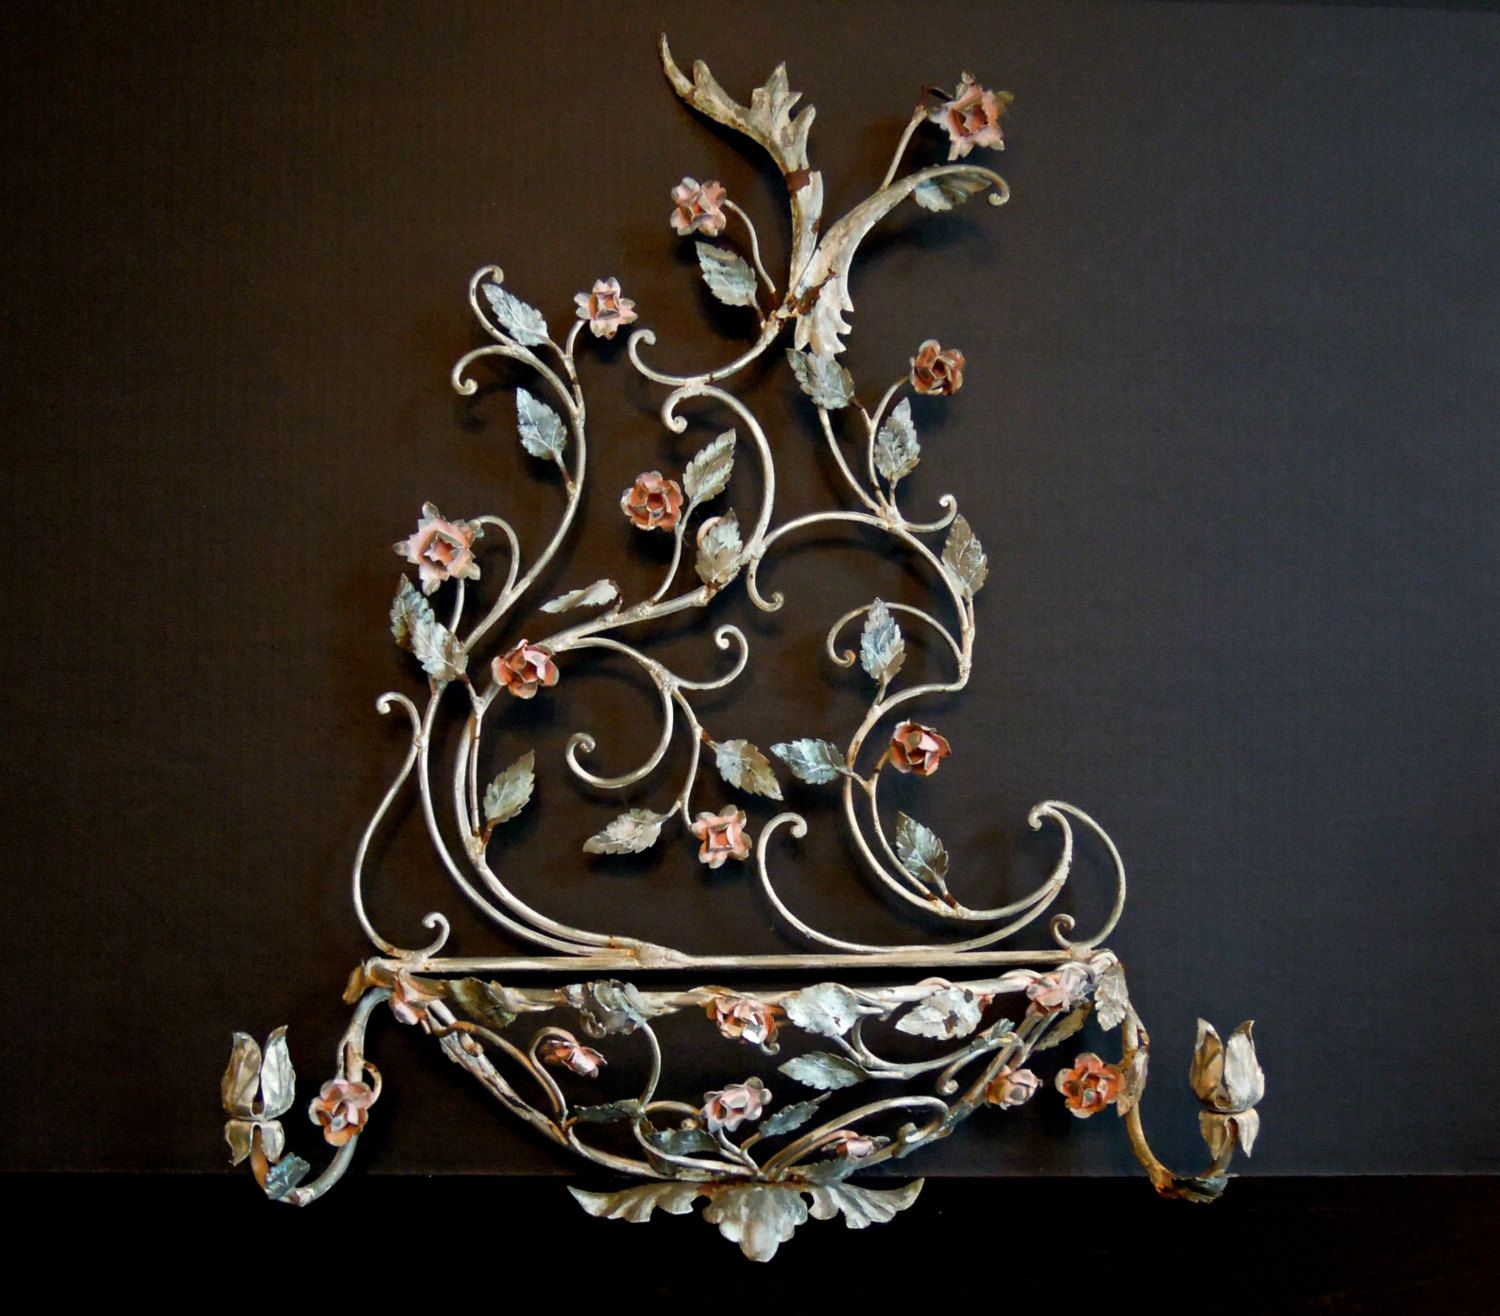 Vintage Italian Florentine Wall Sconce / Candle Holder ... on Wall Sconces That Hold Flowers id=86960